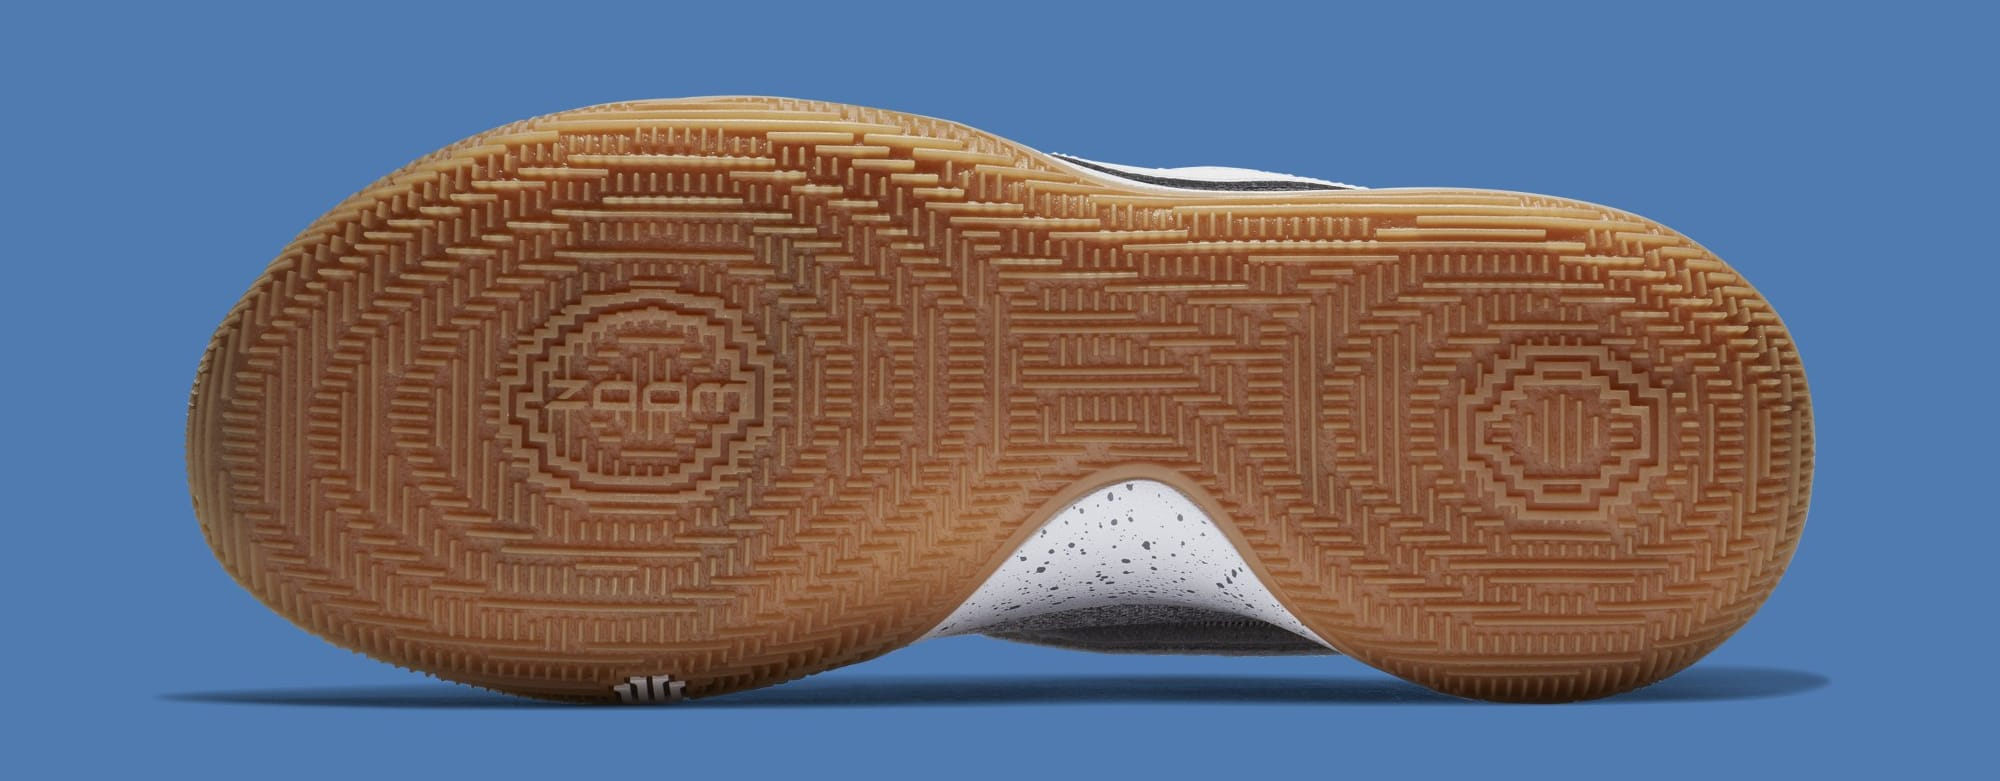 Viaje bestia Ausencia  Nike Debuts Kyrie Irving's New Kyrie Low 'Uncle Drew' Sneakers | Sole  Collector